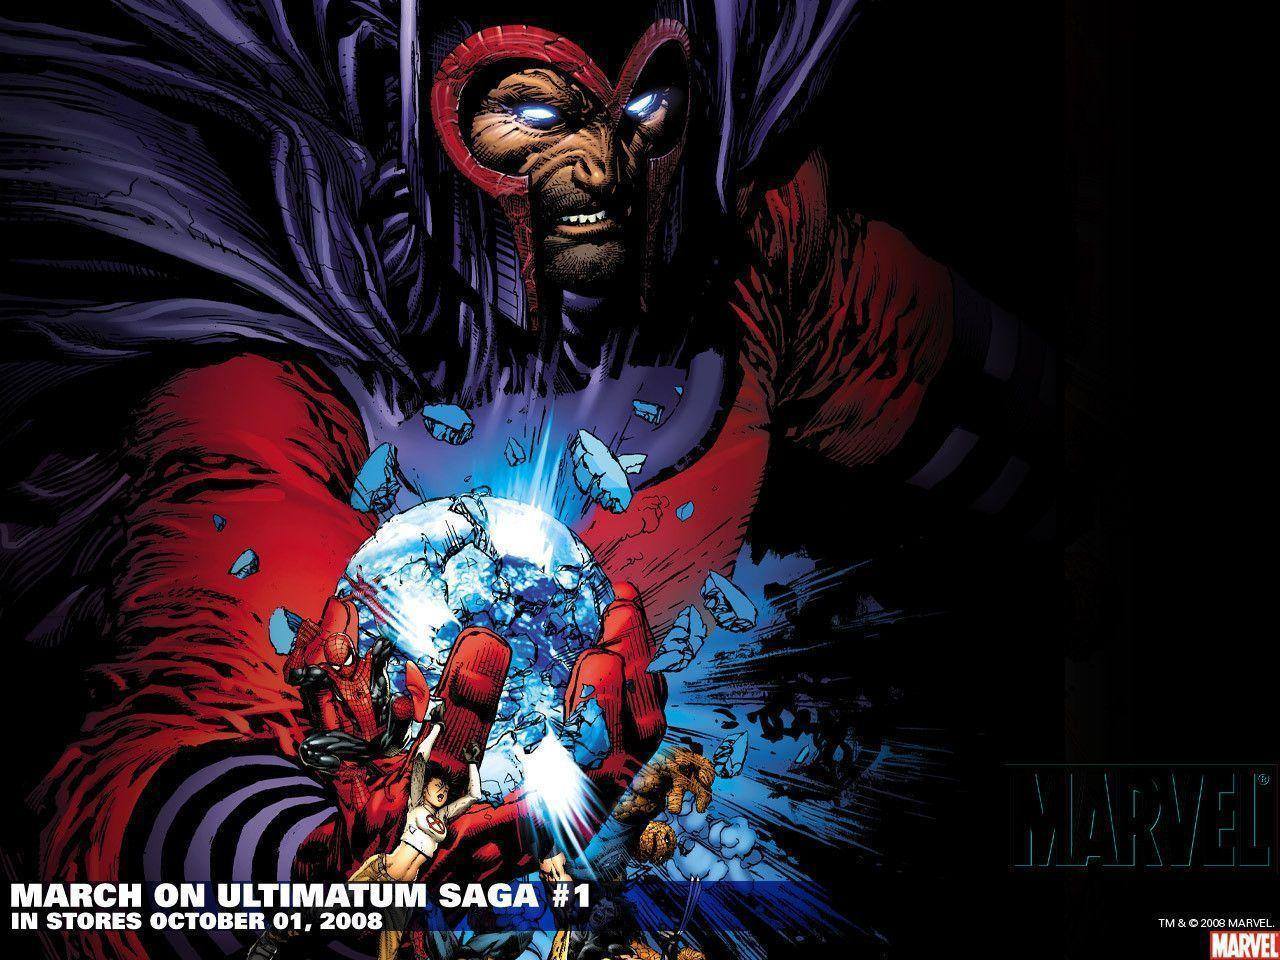 1280x960 - Magneto Wallpapers 3